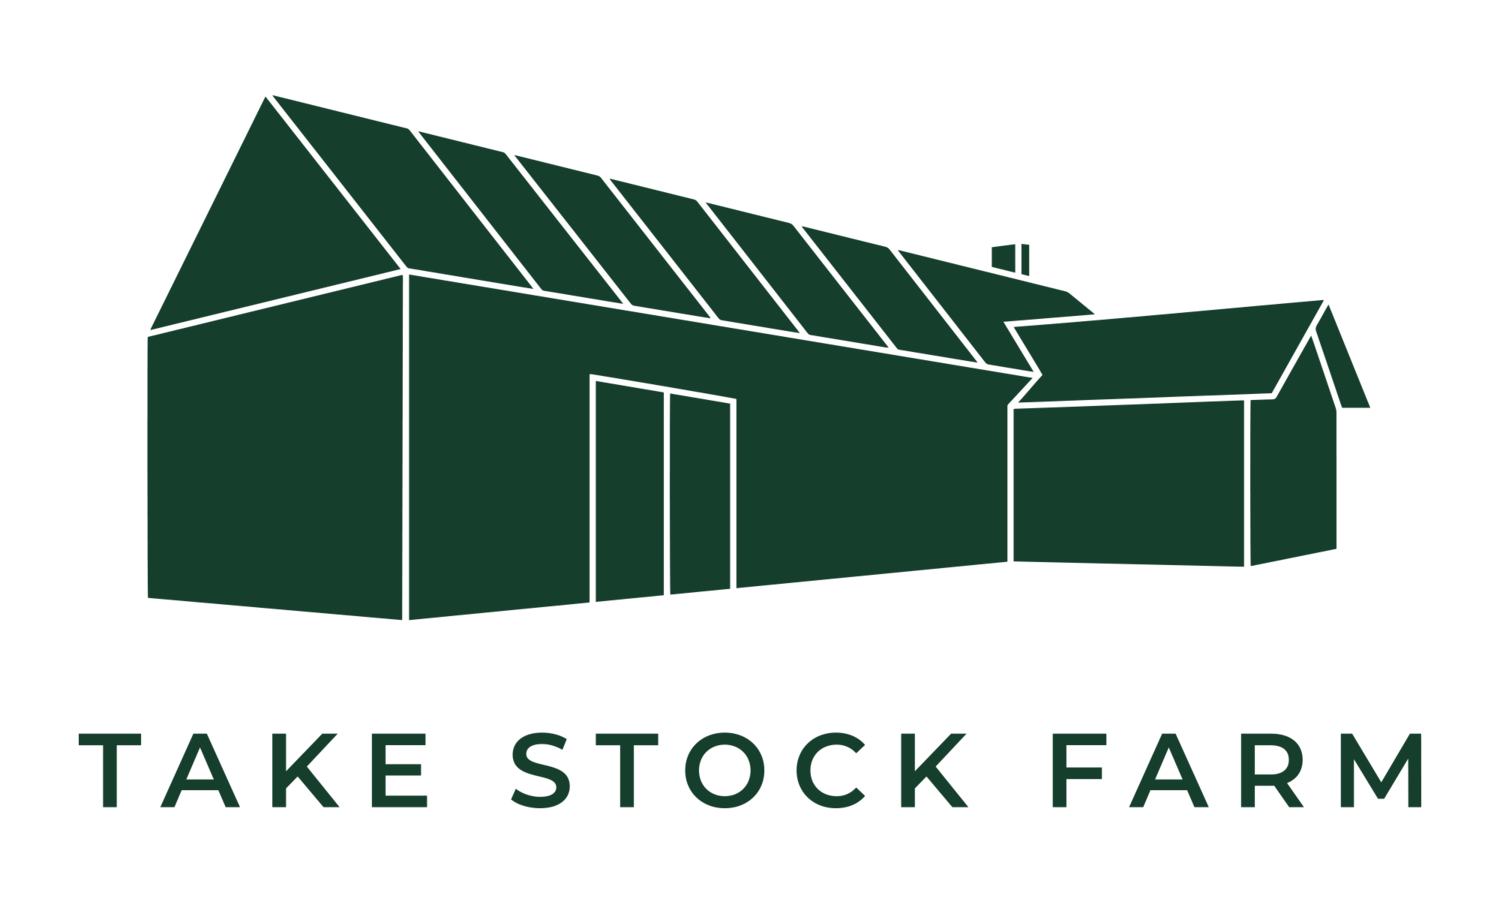 Take Stock Farm